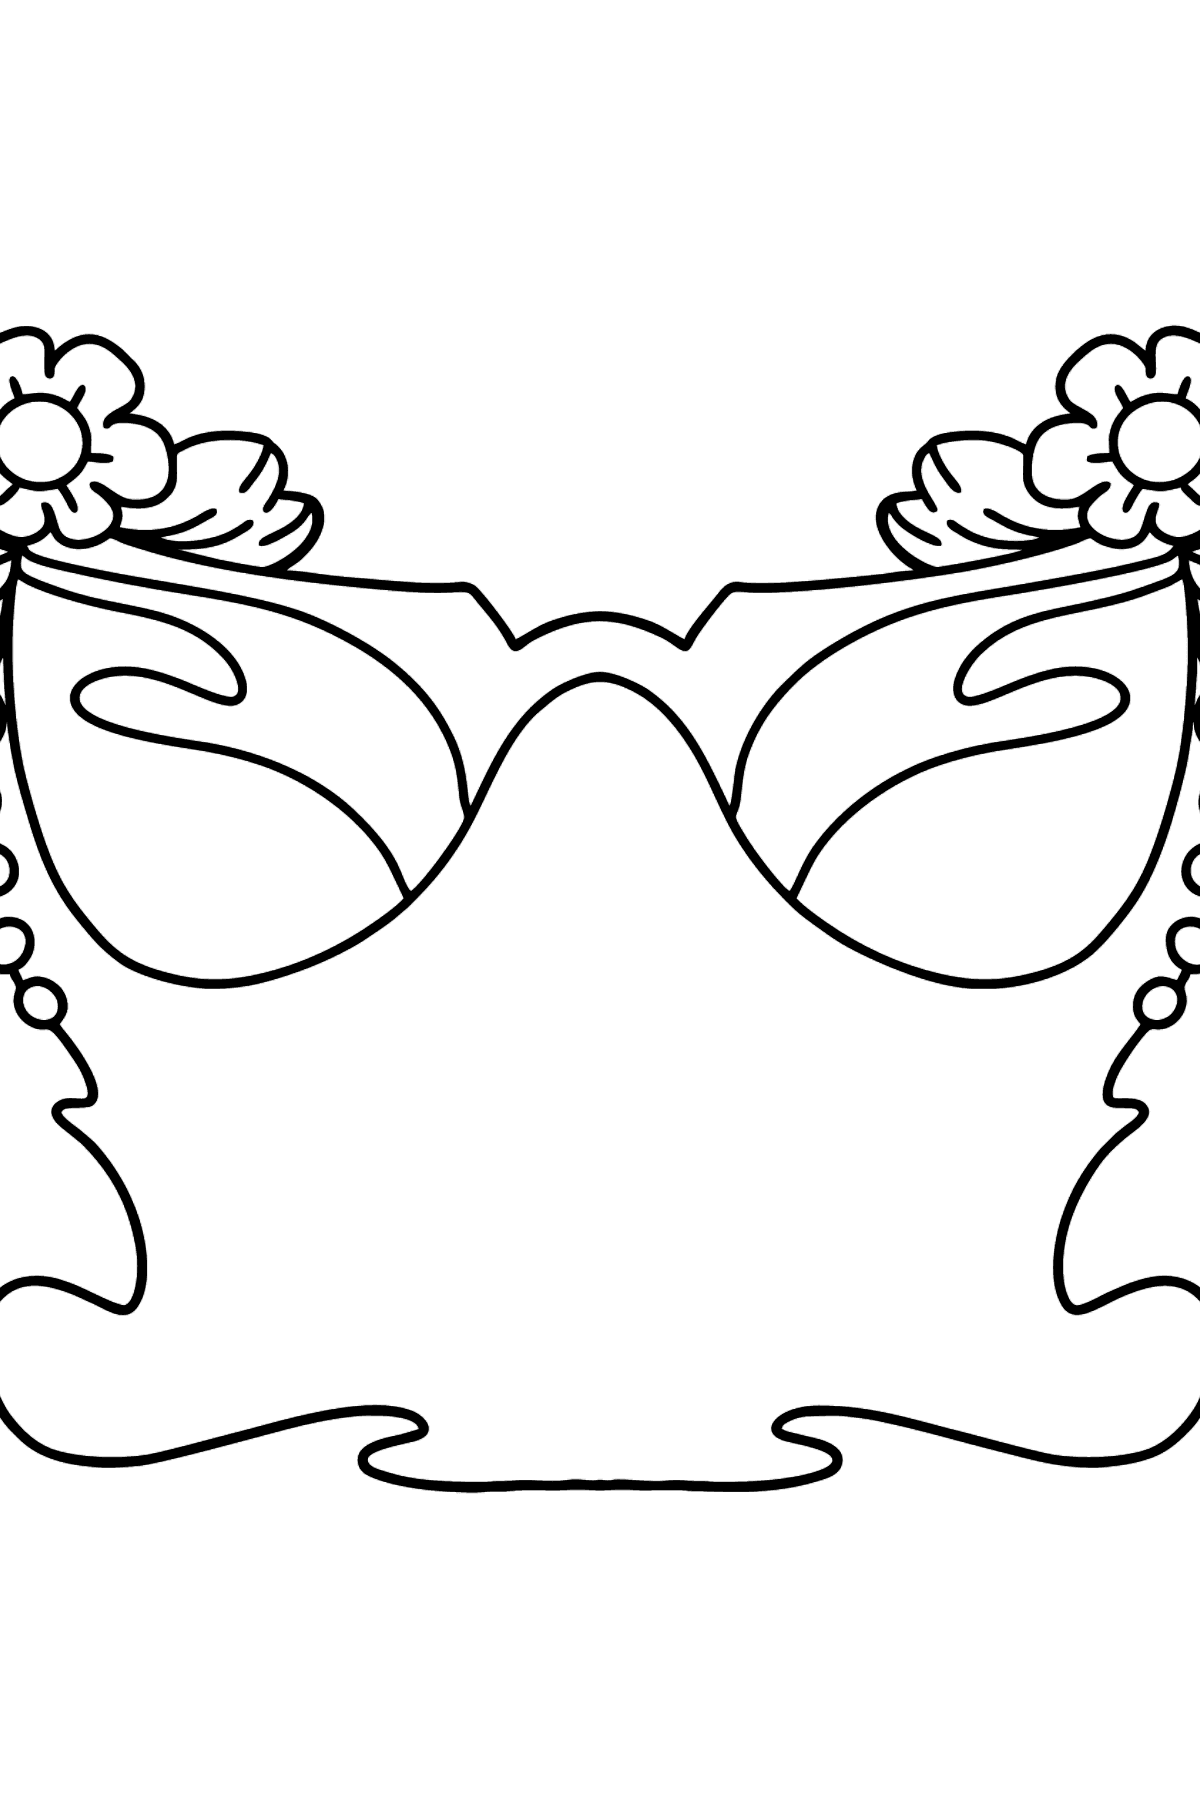 Coloring page with glasses - Coloring Pages for Kids